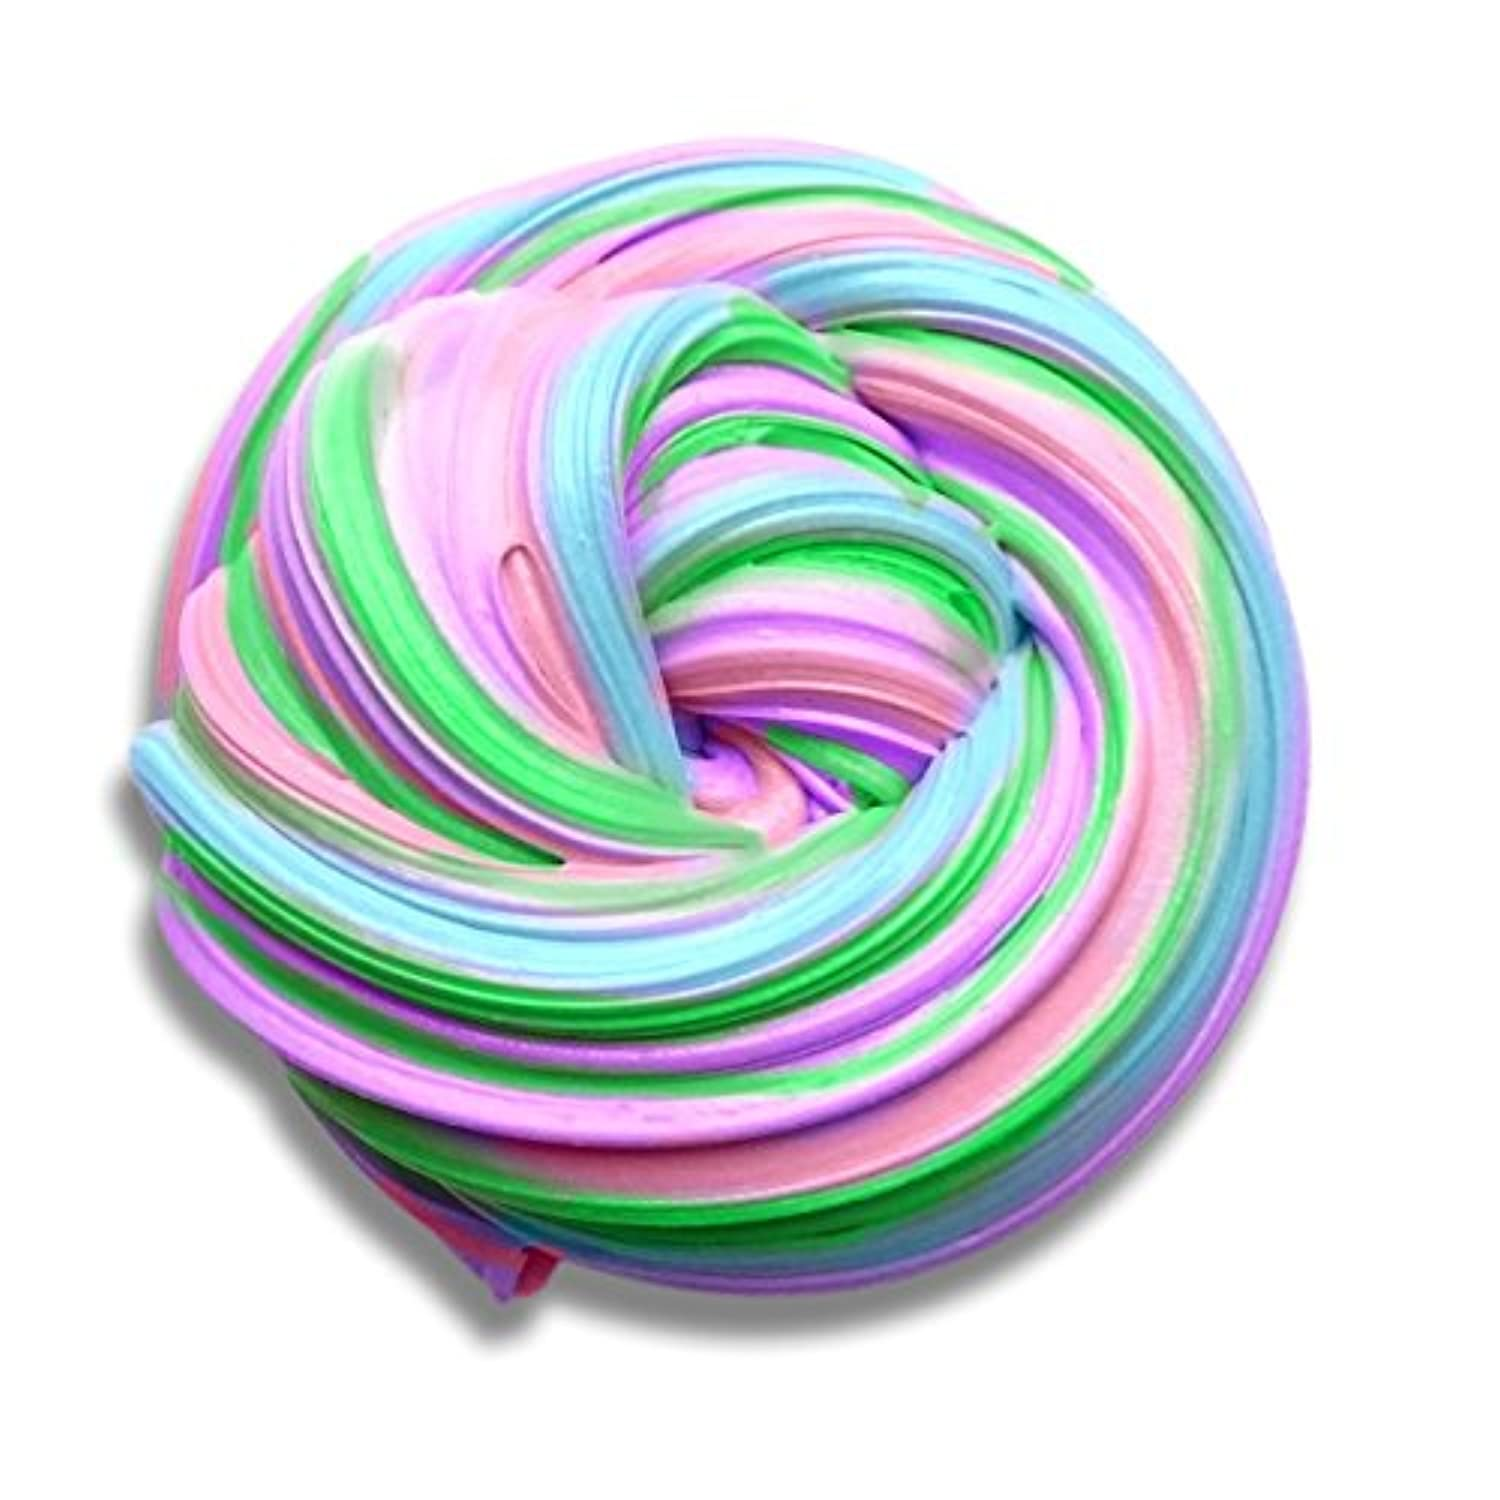 BORUD Fluffy Slime, Rainbow Slime Strees Relief Toy 4 Colours Super Soft Fluffy Floam Slime Non Toxic Stretchy and Slippery Slime - Ideal for Work, Office, Arts, Crafts, and School Projects